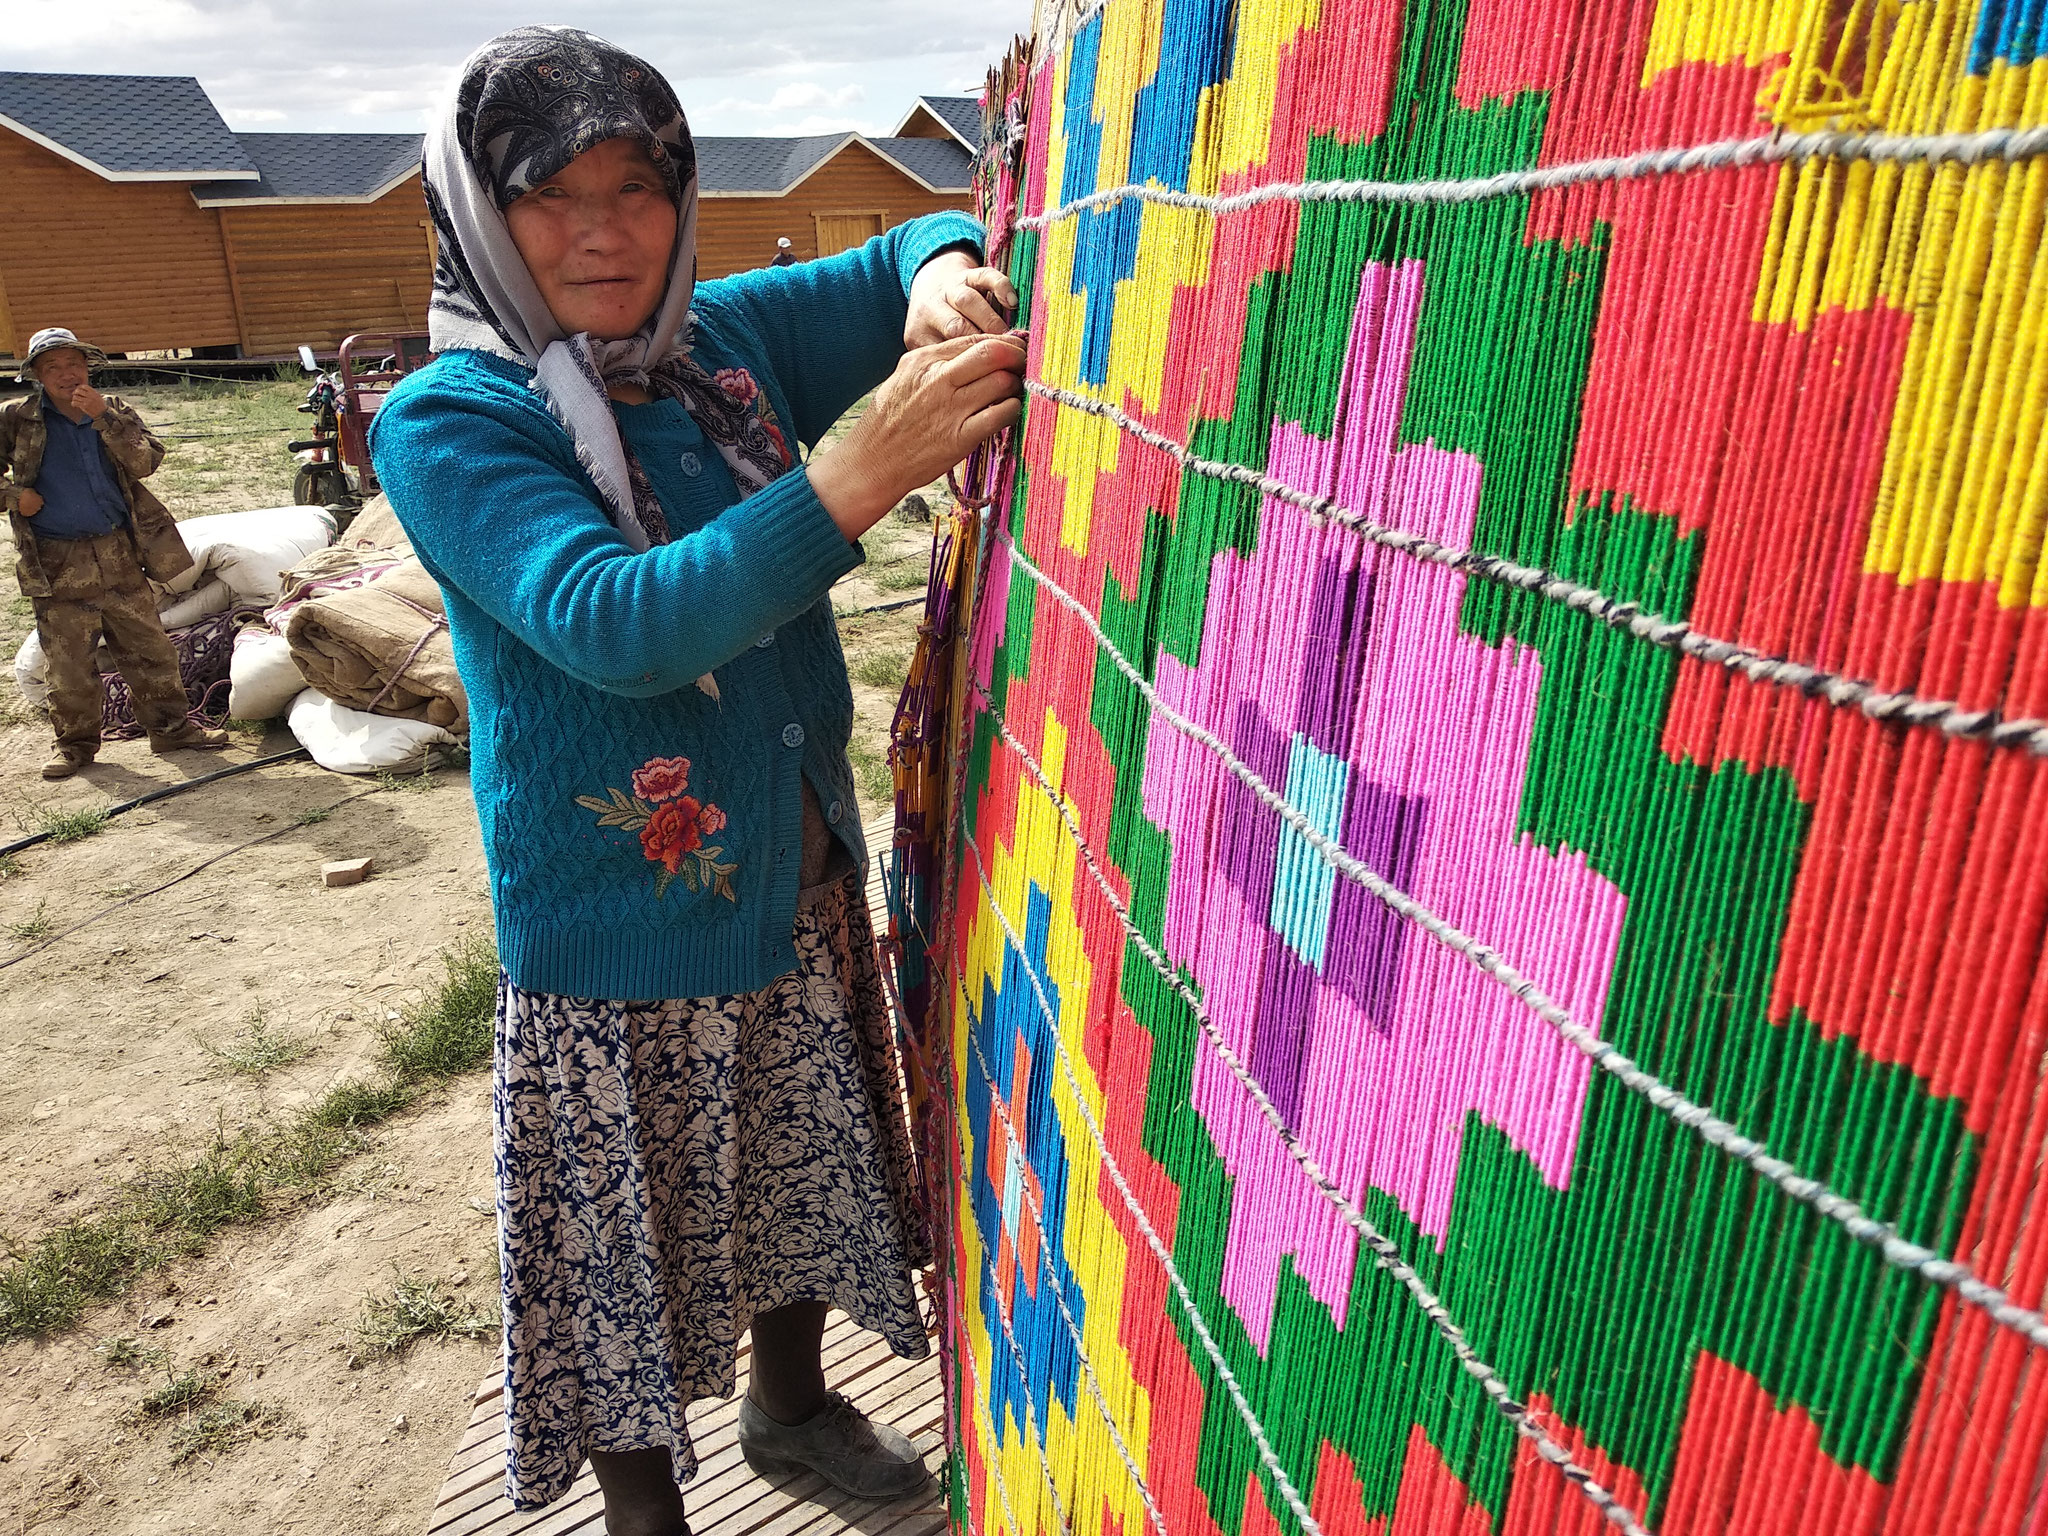 A Kazakh woman securing the straw-mat siding of the yurt.